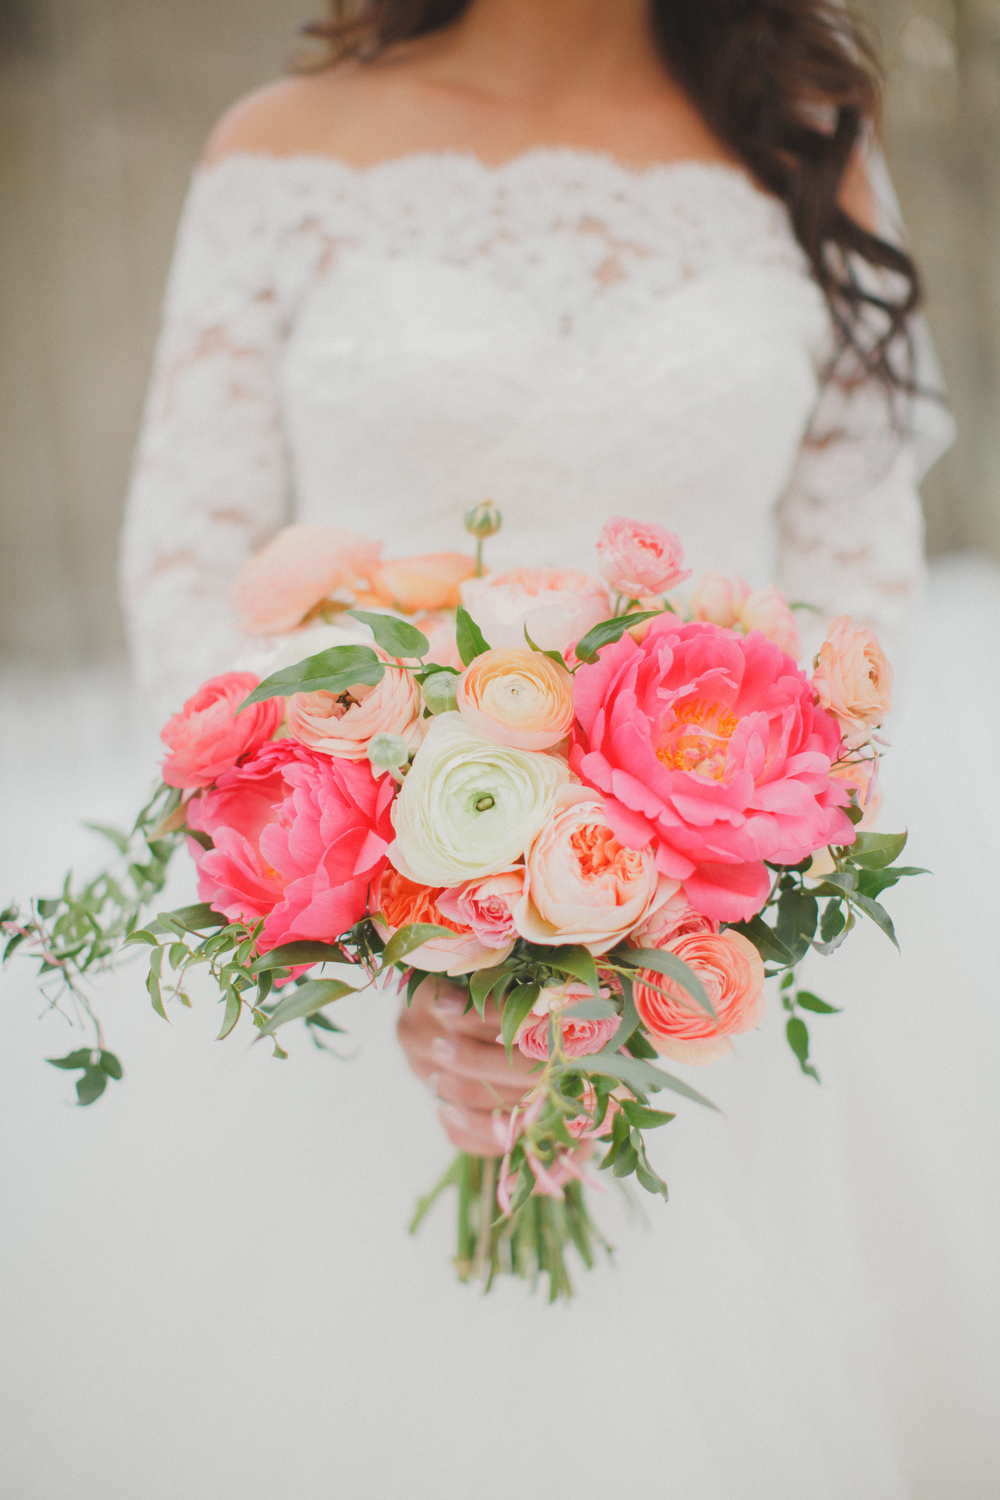 April Vail Wedding, Coral Peonies